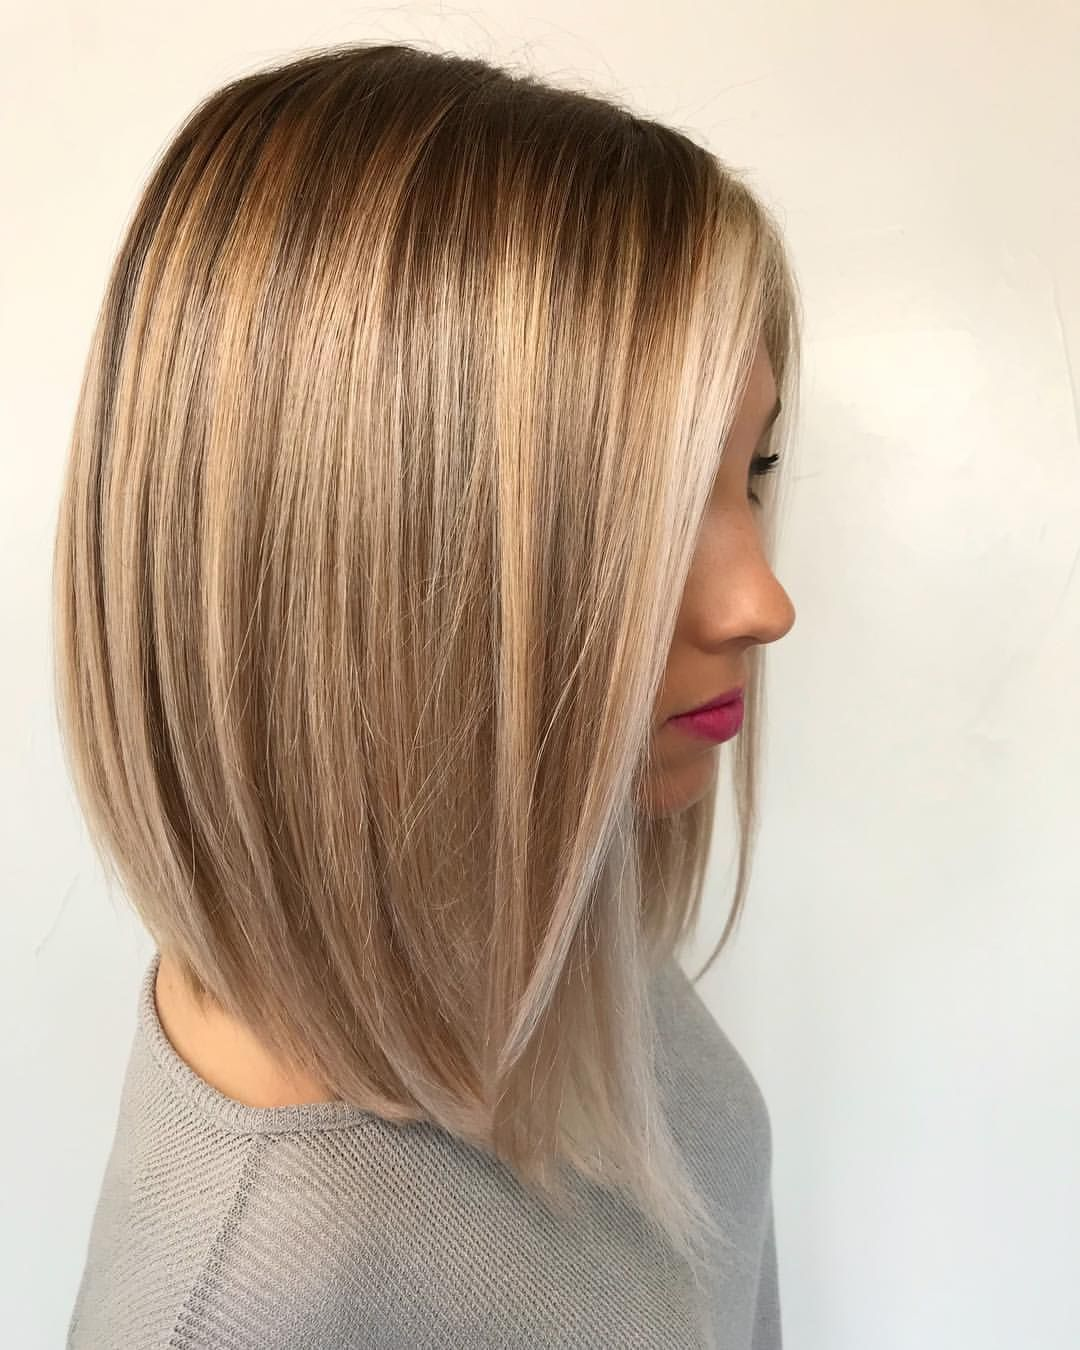 Pin by boo smith on hair pinterest lob balayage and stylists